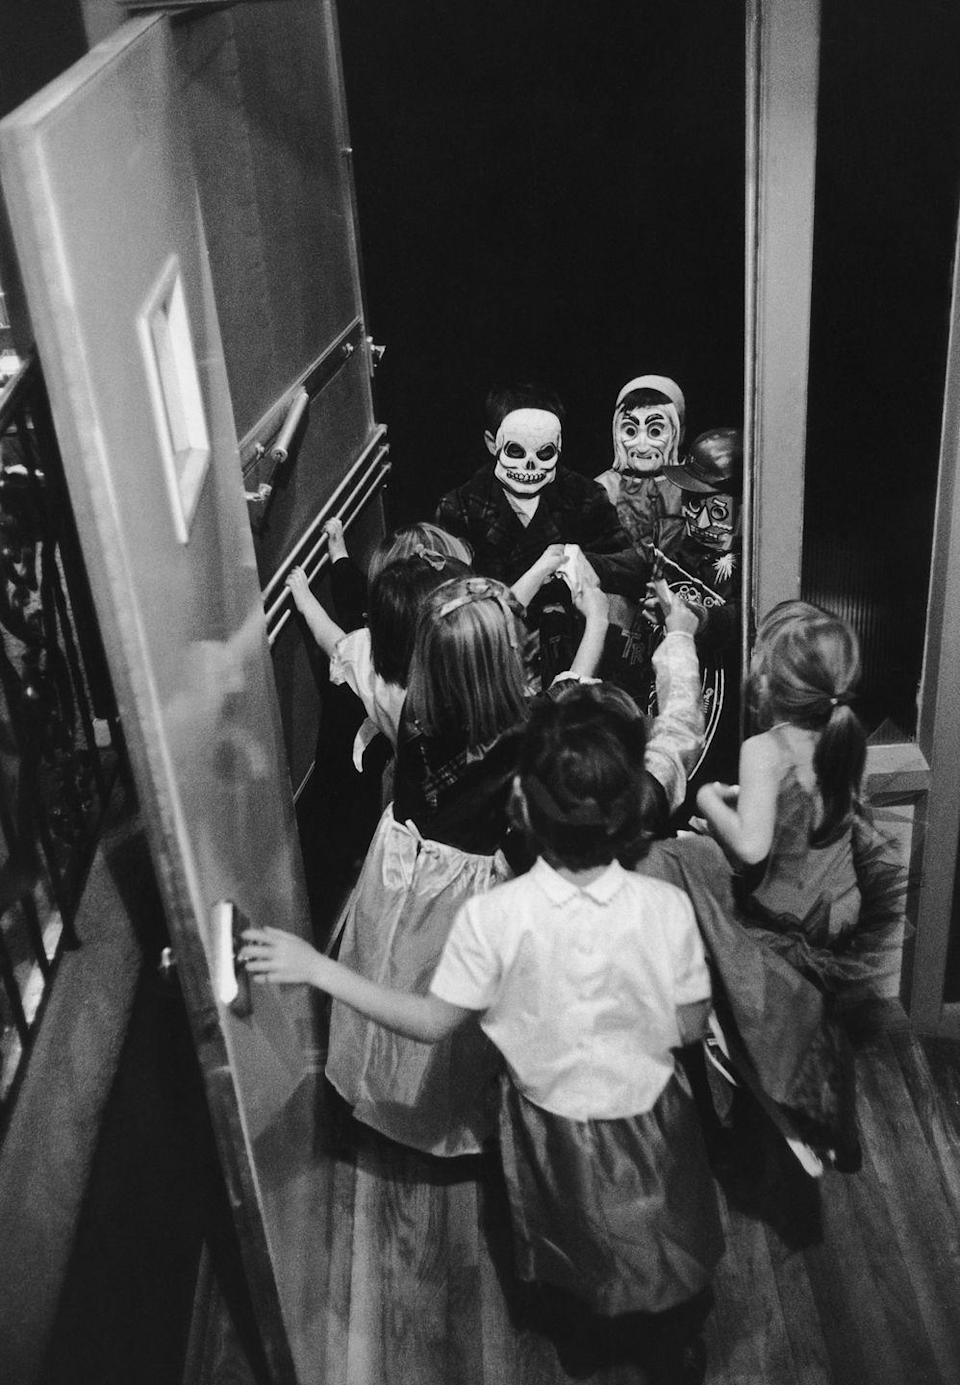 <p><em><strong>In what century did the tradition of trick or treating begin?</strong></em></p><p><strong>Answer: </strong>The American tradition of trick or treating dates back to the 1920s but in Europe, as early as the 16th century people were known to go from door to door on Halloween night asking for food, reciting verses, wearing costumes, and warning of curses if they didn't get a warm welcome. </p>